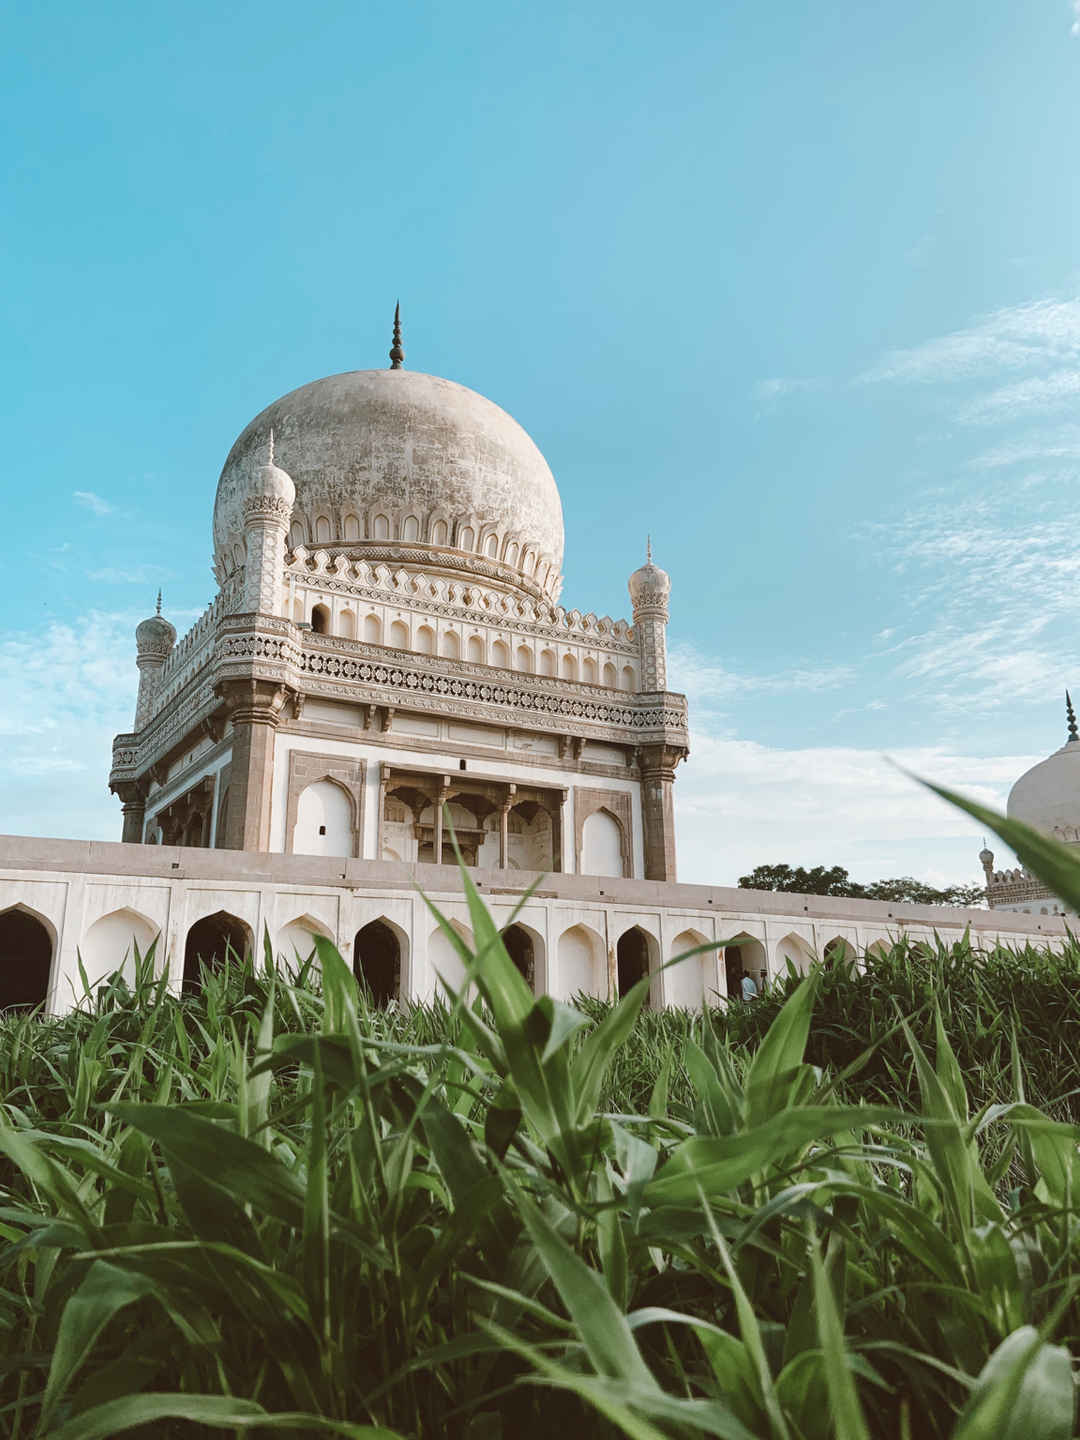 Qutub Shahi Tombs In Hyderabad: What A Photogenic Spot!